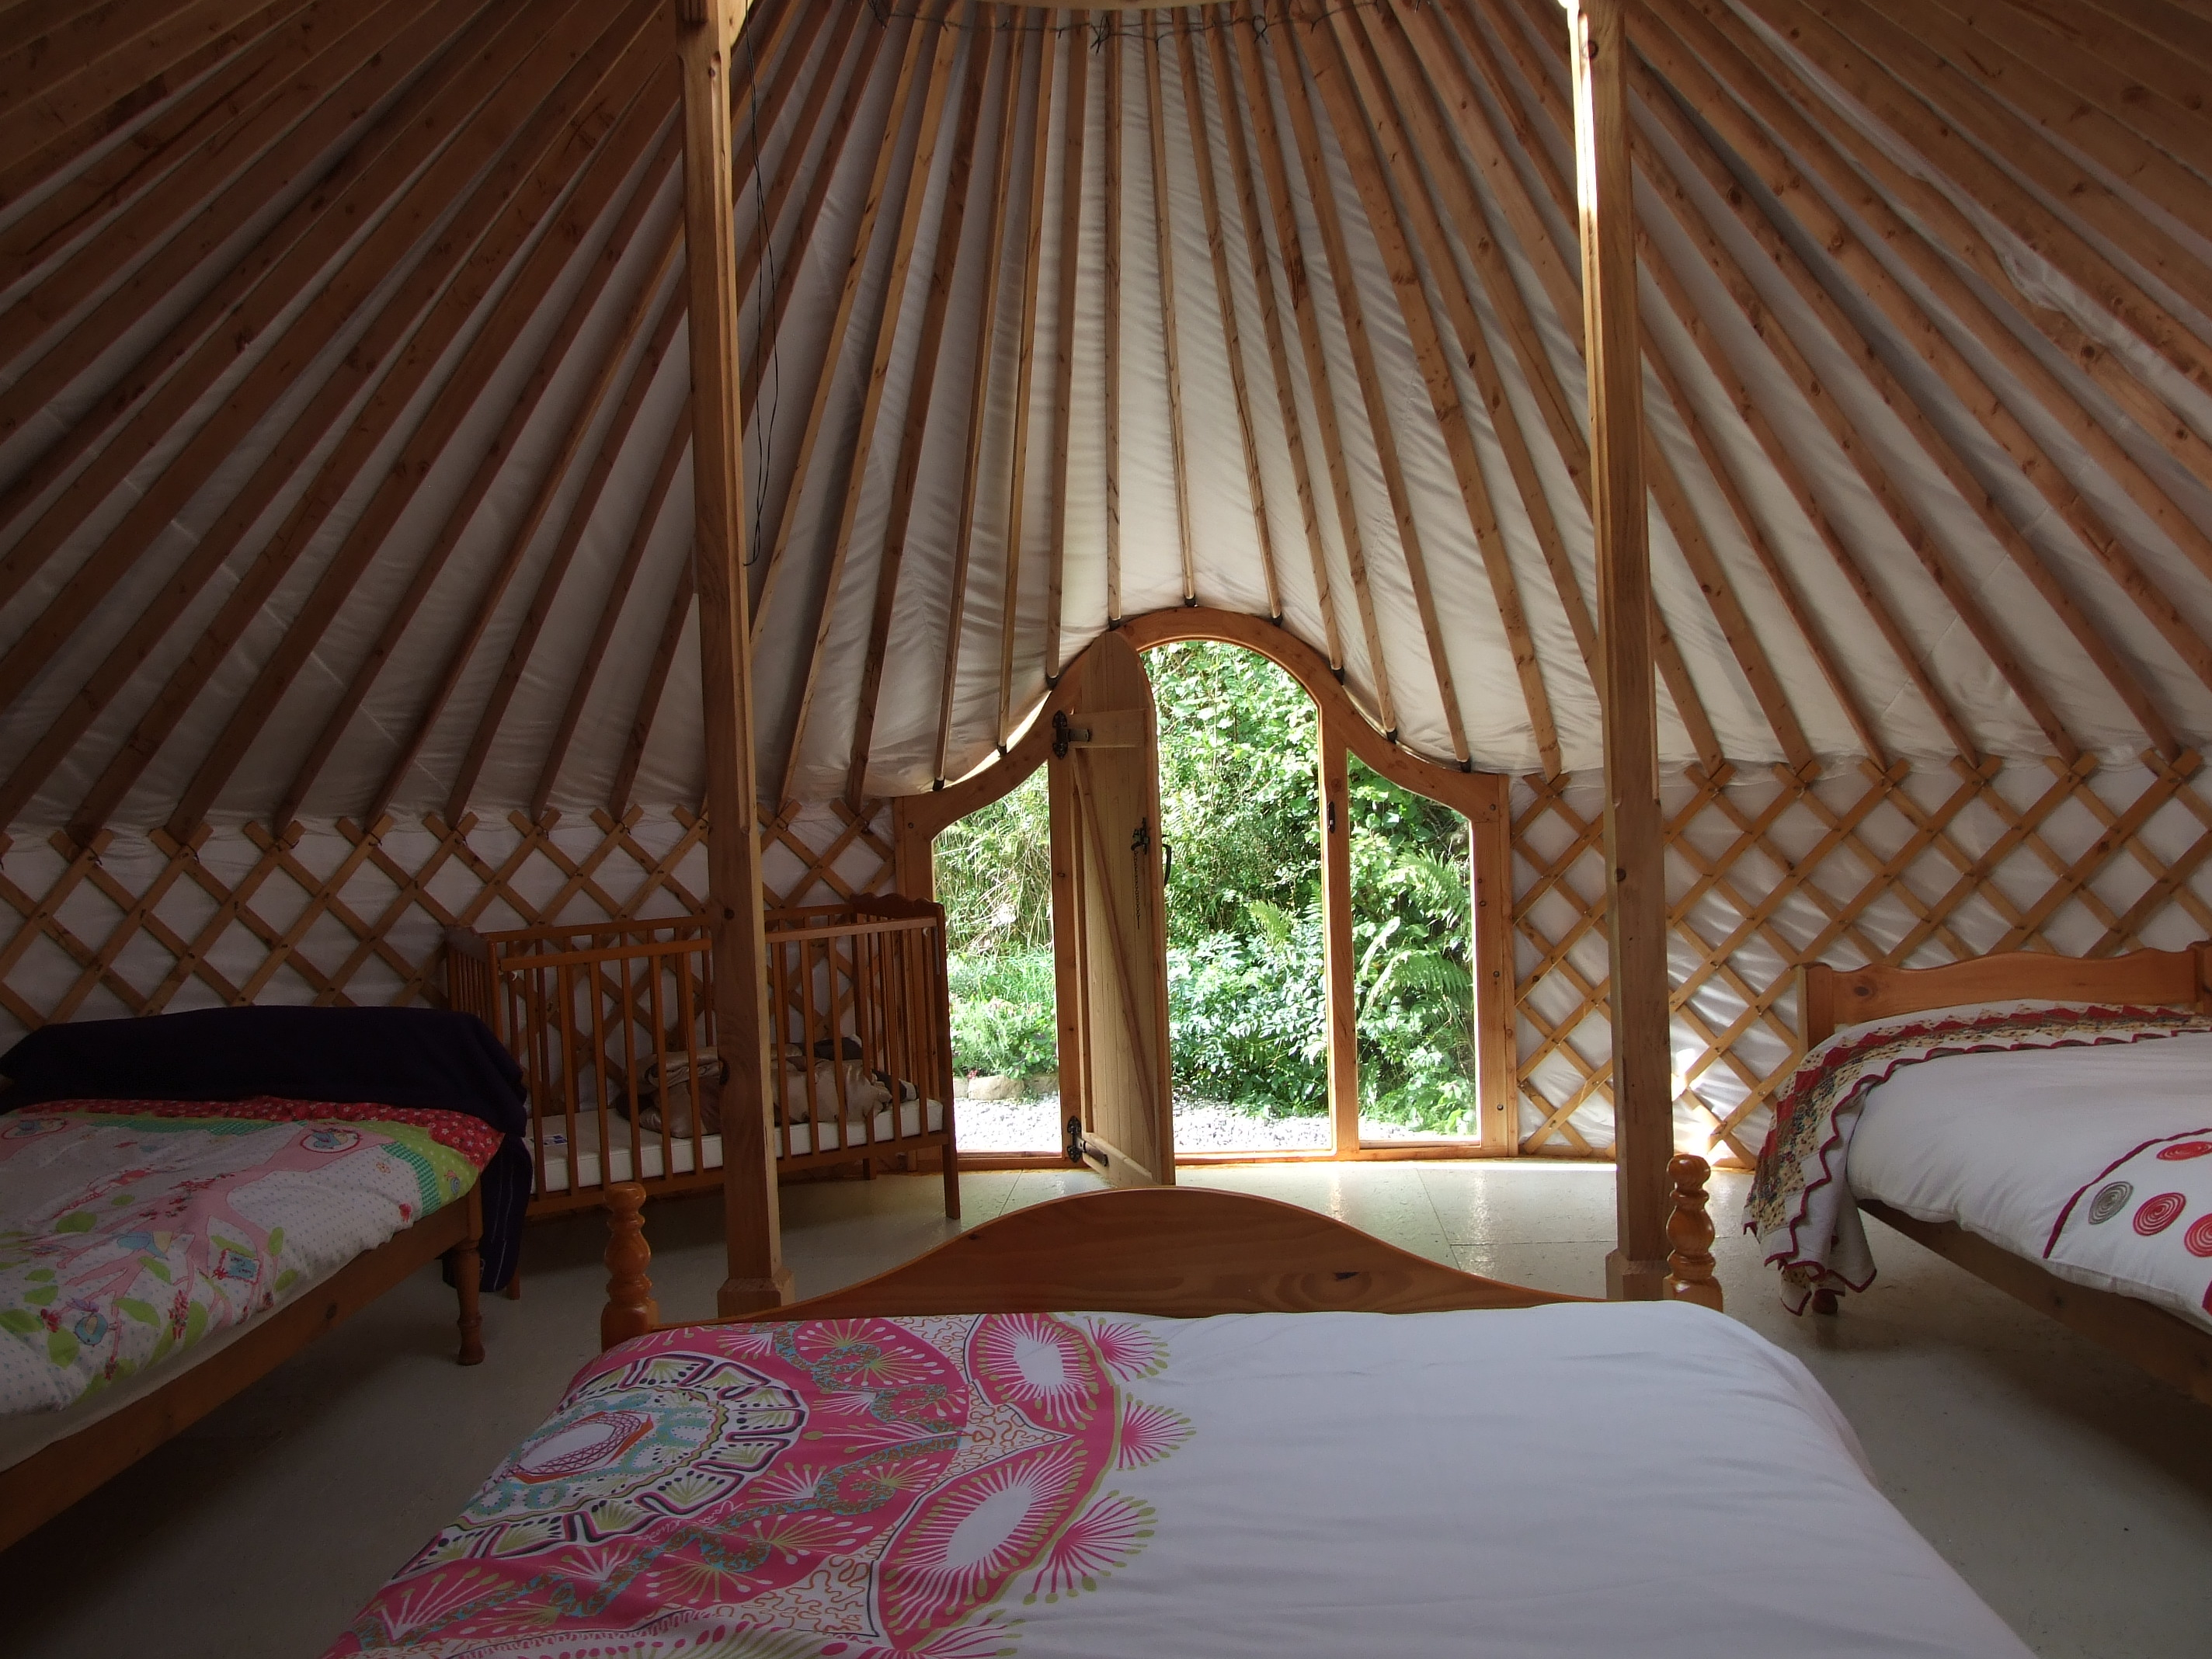 Glamping In Ireland. Sunrise Sanctuary - Yurt Interior. Made in Ireland